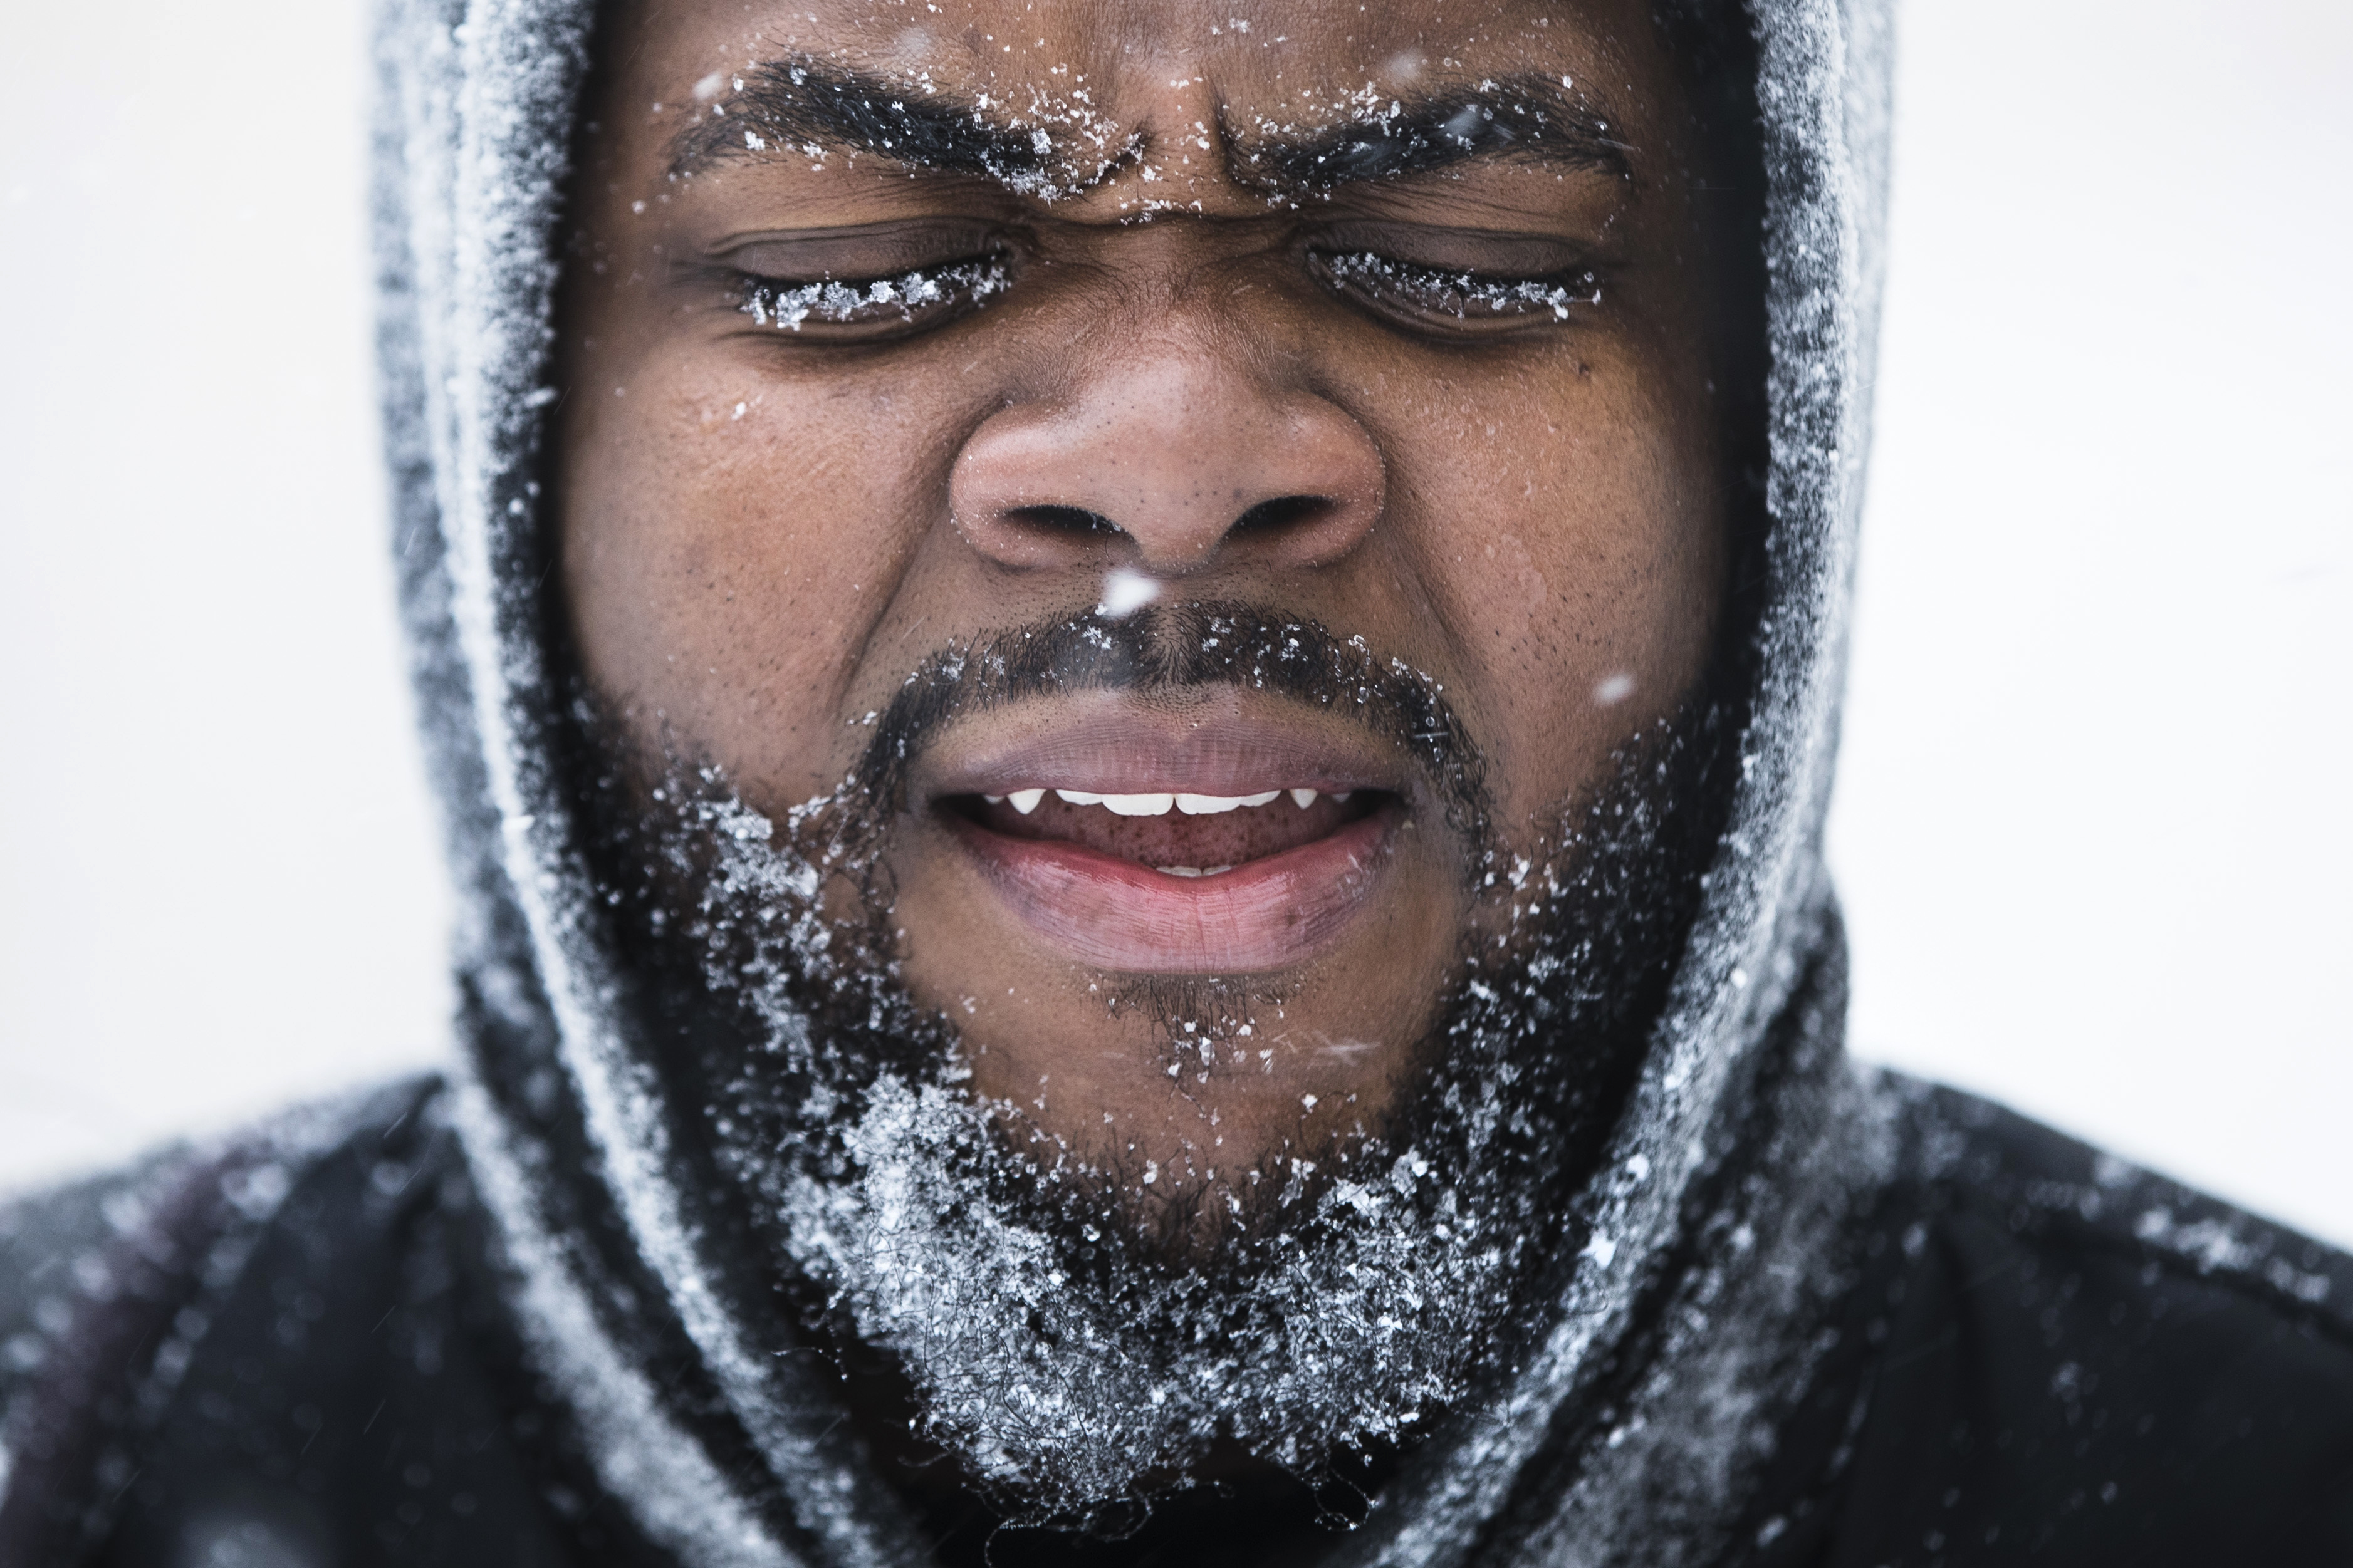 "<div class=""meta image-caption""><div class=""origin-logo origin-image none""><span>none</span></div><span class=""caption-text"">Ajamu Gumbs of New York makes his way to a bus station during a snowstorm in Atlantic City, N.J., Thursday, Jan. 4, 2018. (AP Photo/Matt Rourke) (AP)</span></div>"